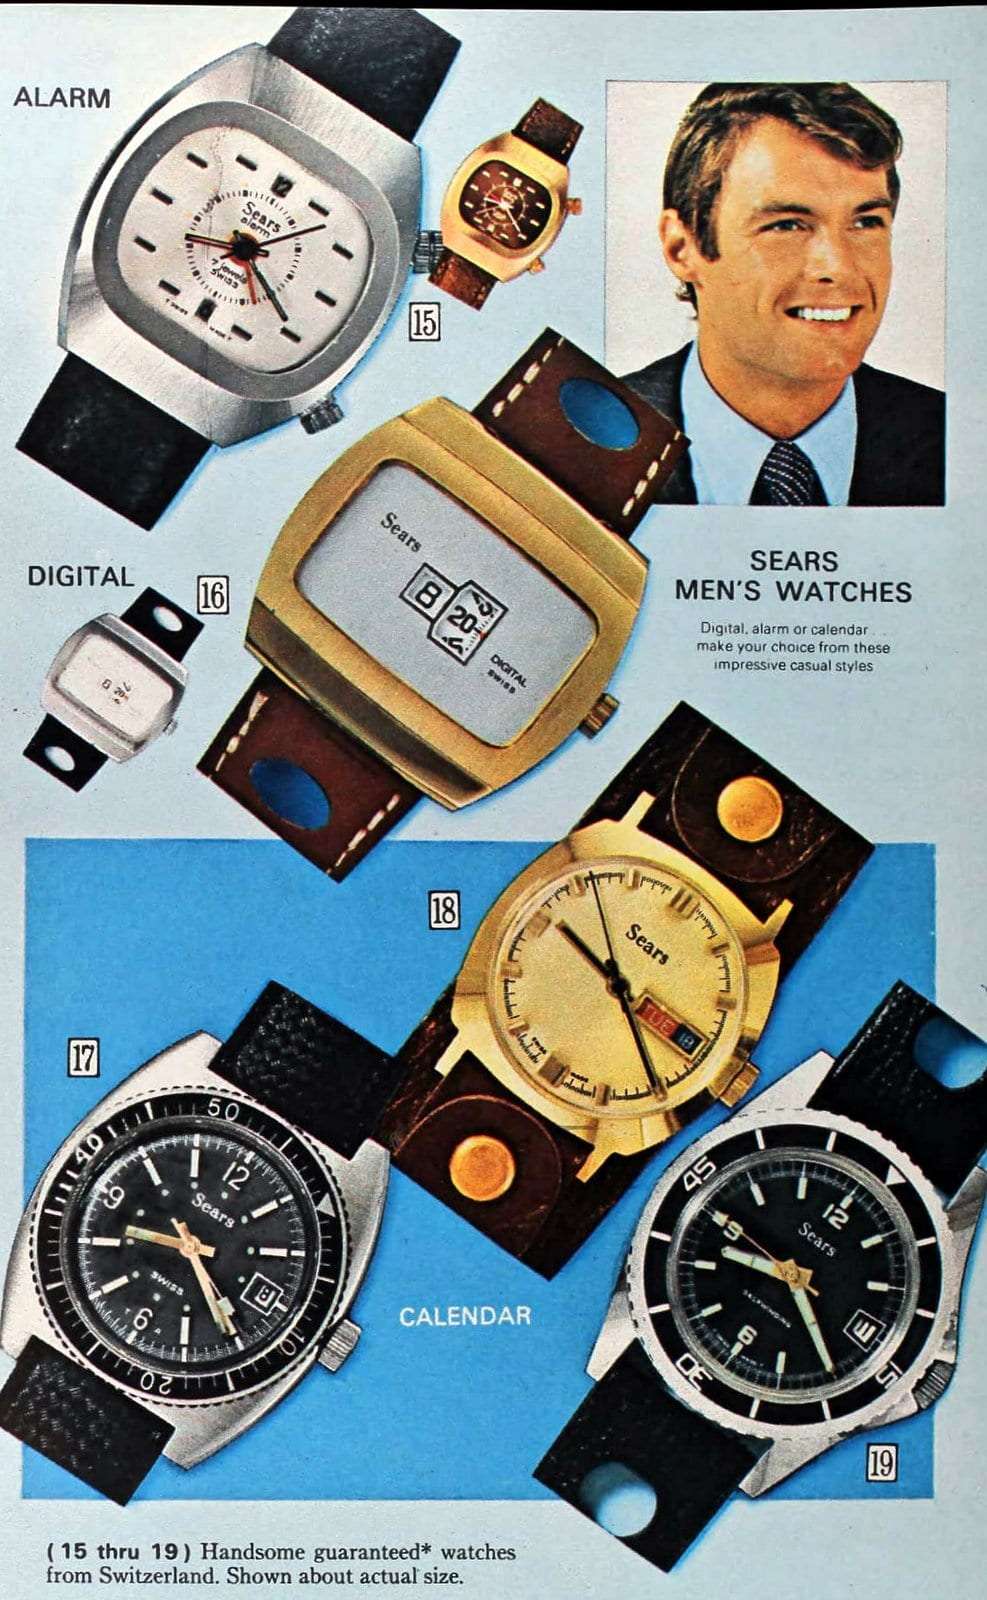 Sears mens' watches (1971)